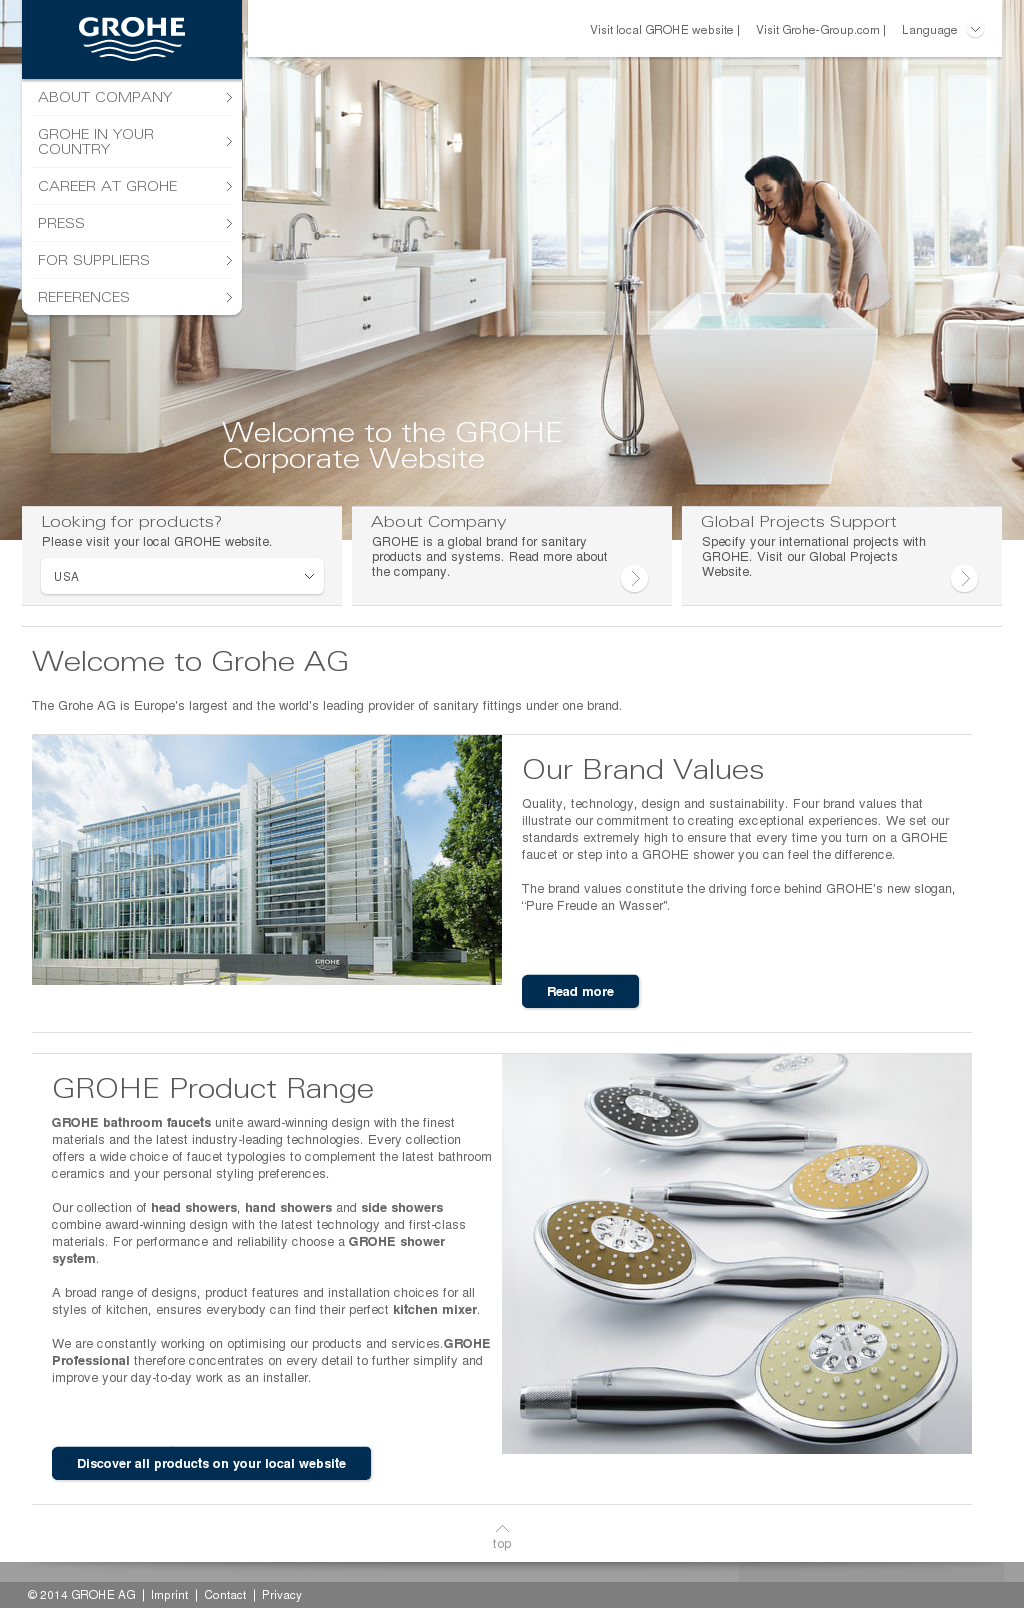 Grohe Competitors, Revenue and Employees - Owler Company Profile